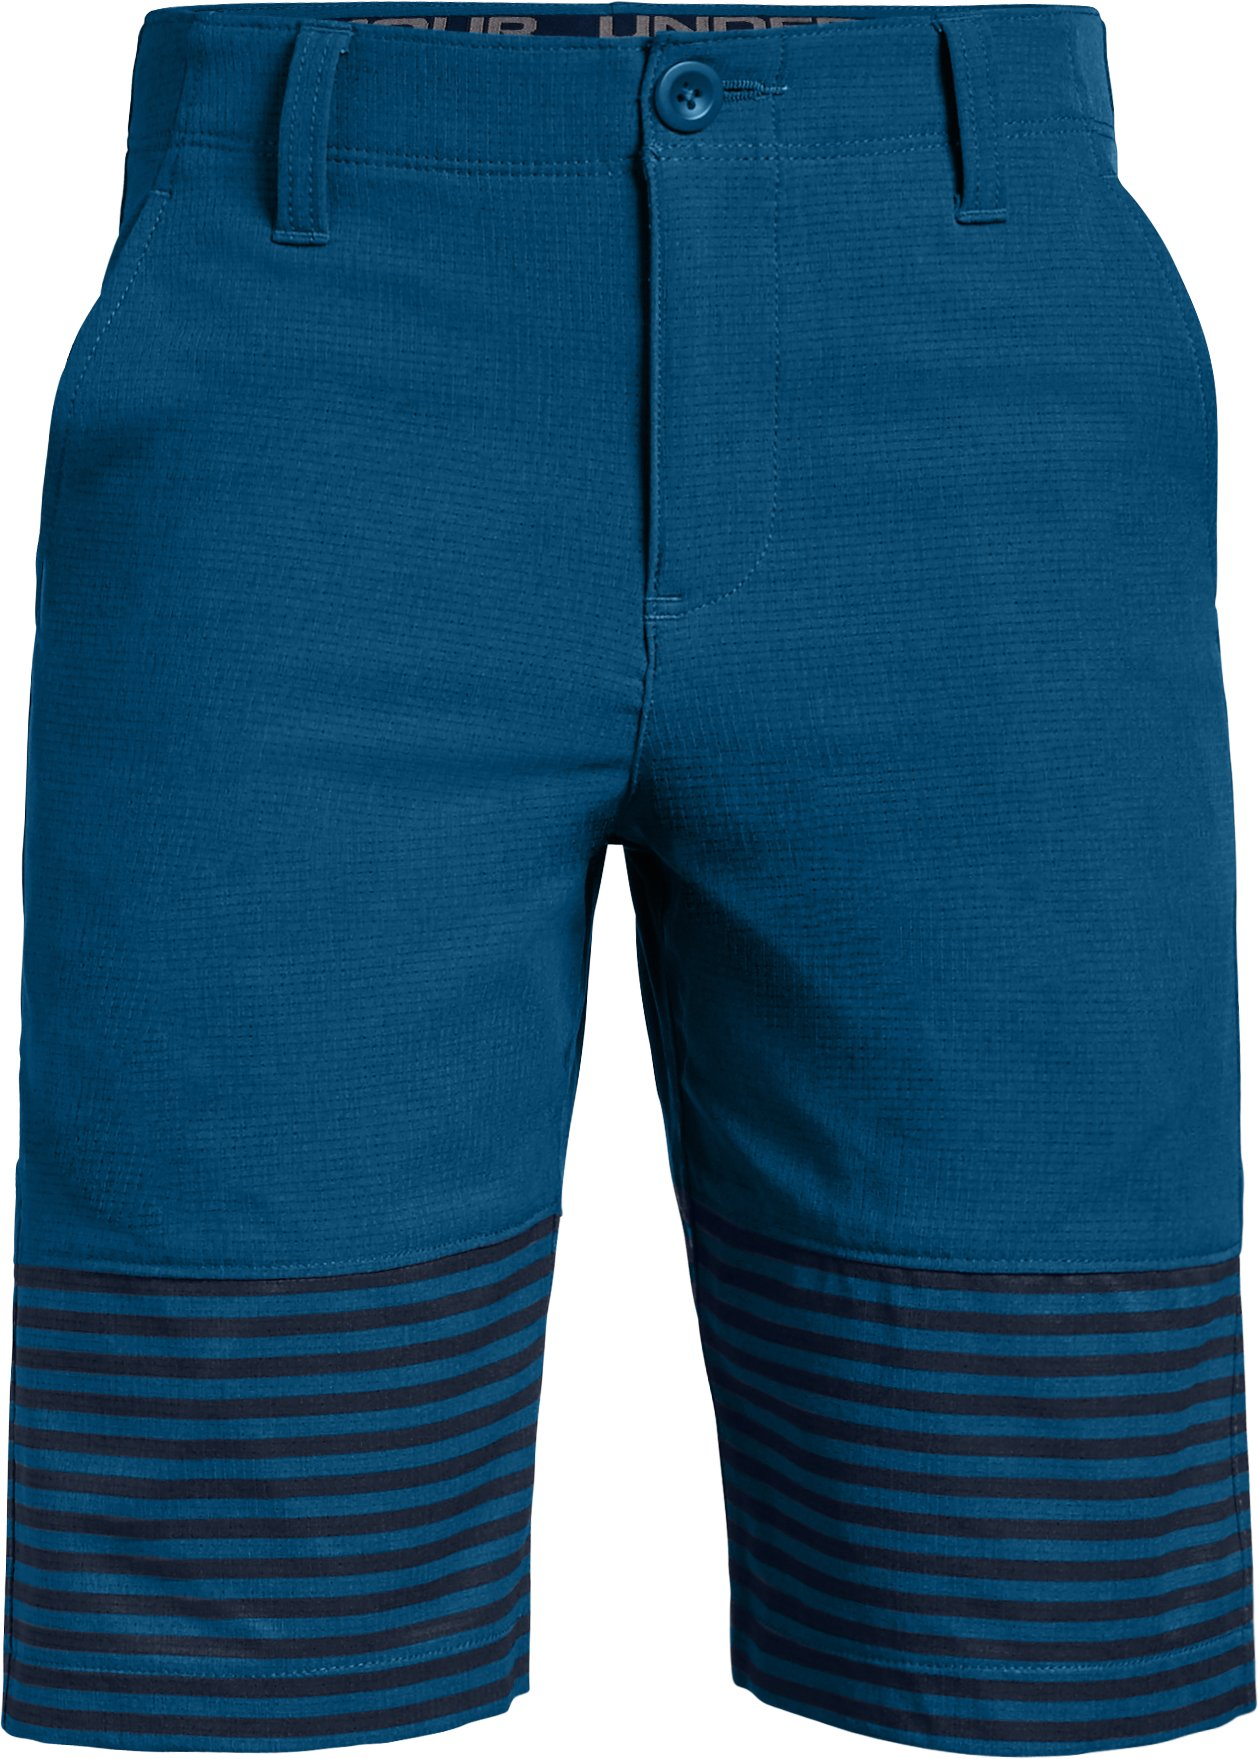 Boys' UA Match Play Vented Shorts, MOROCCAN BLUE,